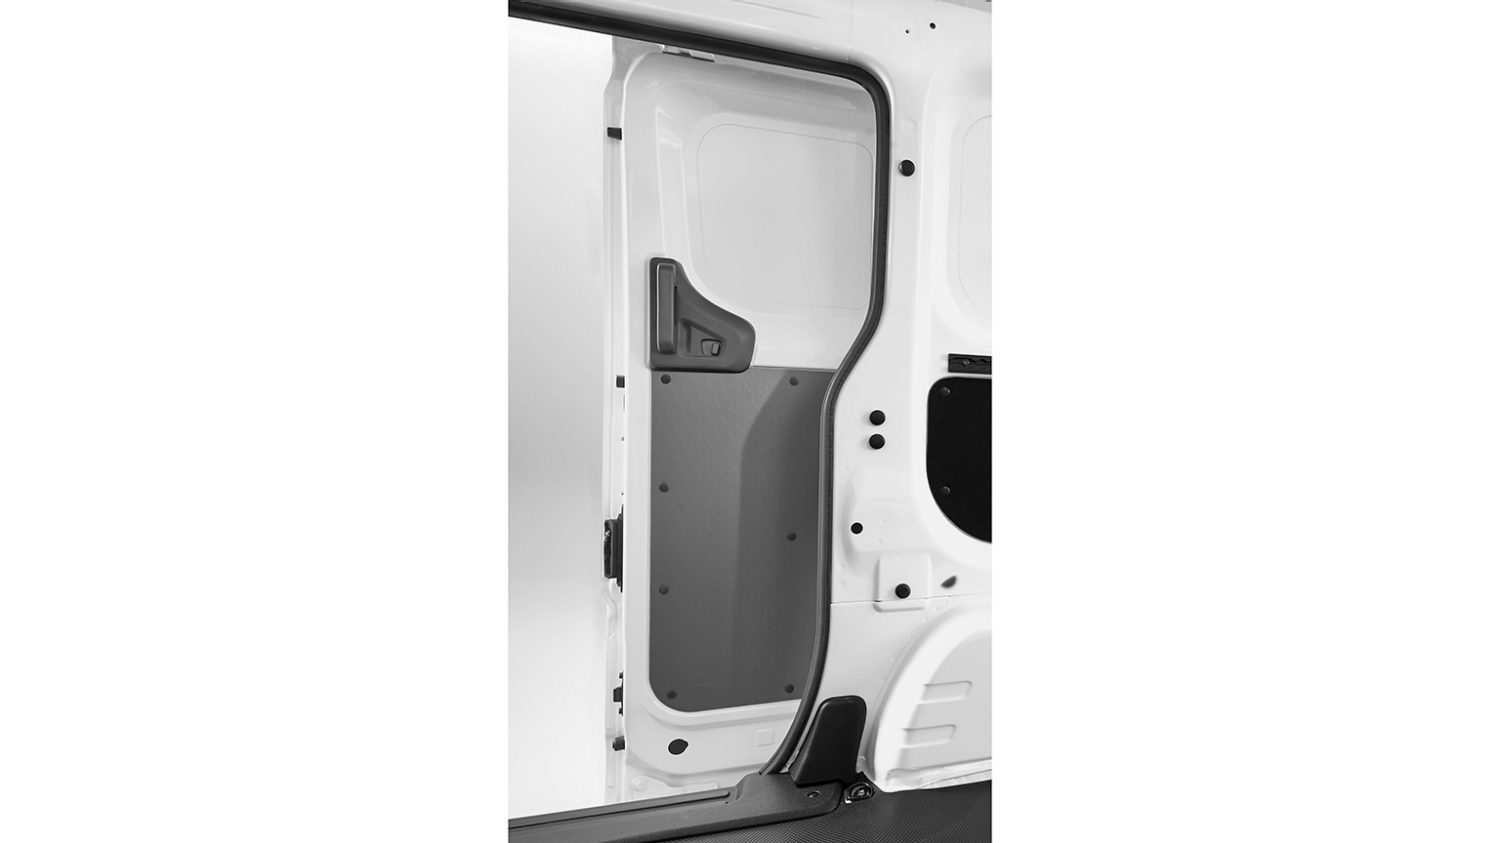 Nissan NV200 - Interior - Sliding door plastic protection (lower protection 2 parts)